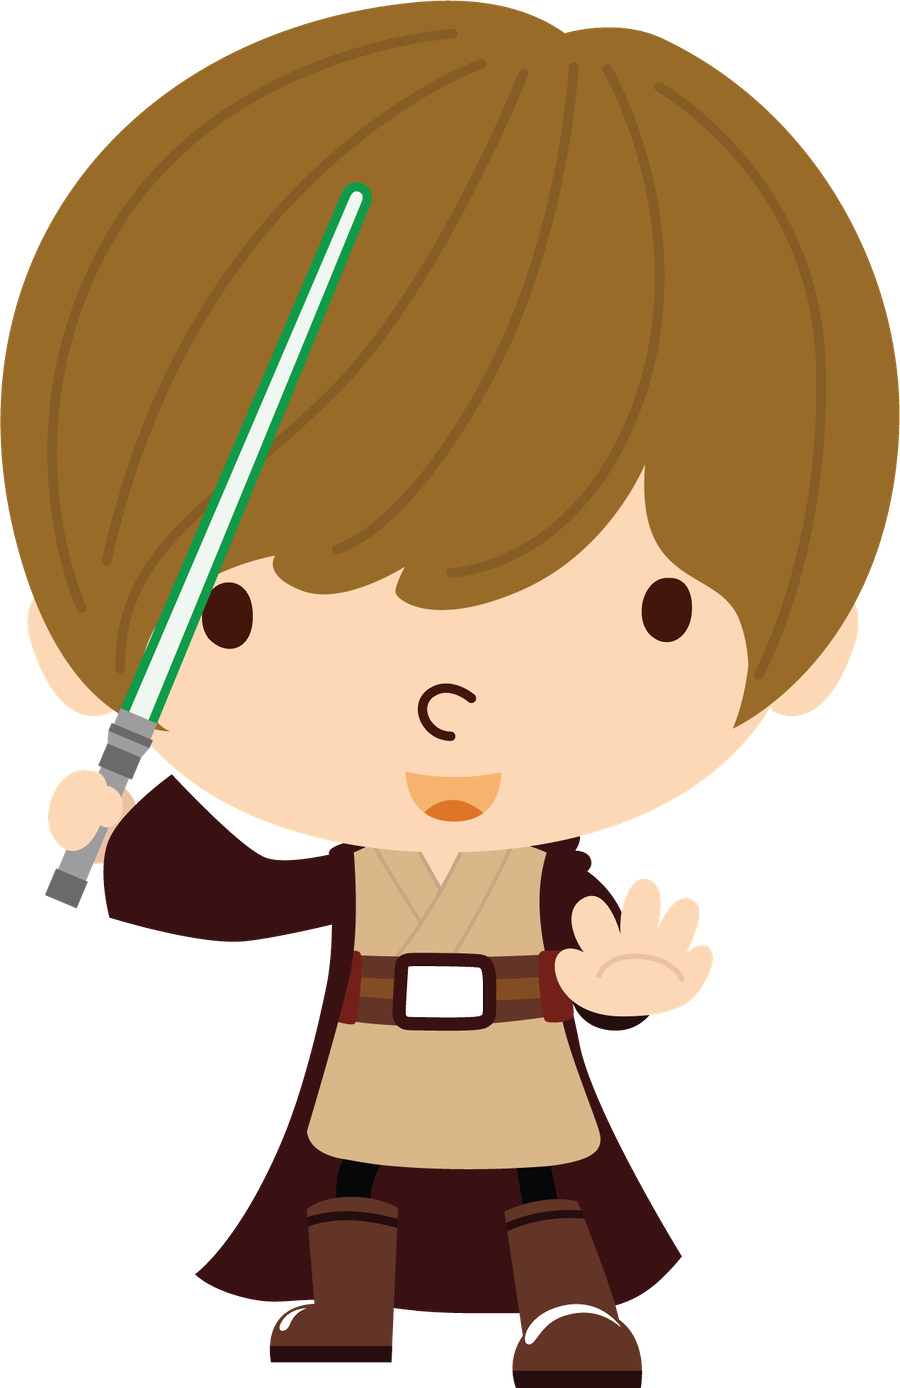 Star wars hans solo clipart jpg library Star Wars - Minus | already felt- characters 2 | Pinterest | Star ... jpg library